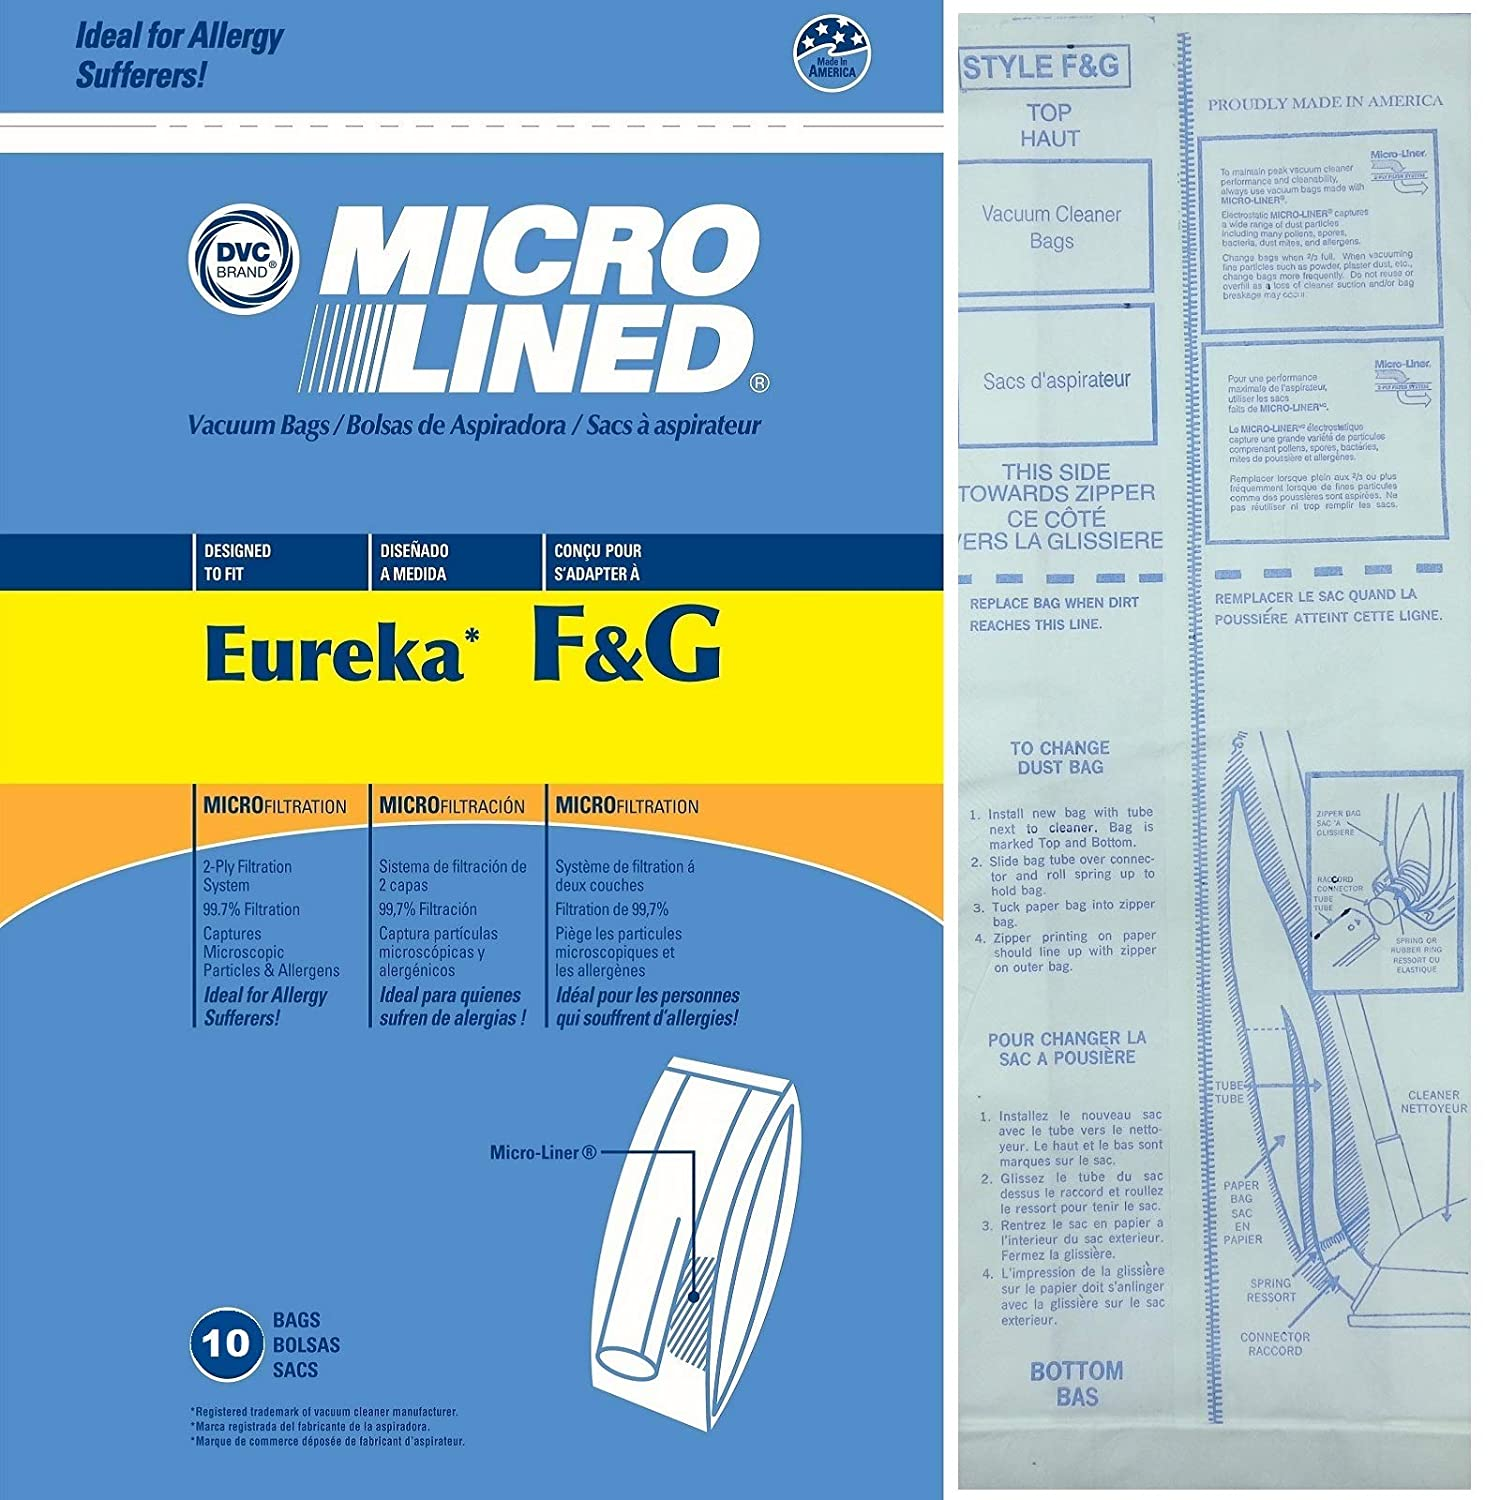 10 Allergy Bags for Eureka Style F&G Vacuum Cleaner F G Sanitaire Commercial